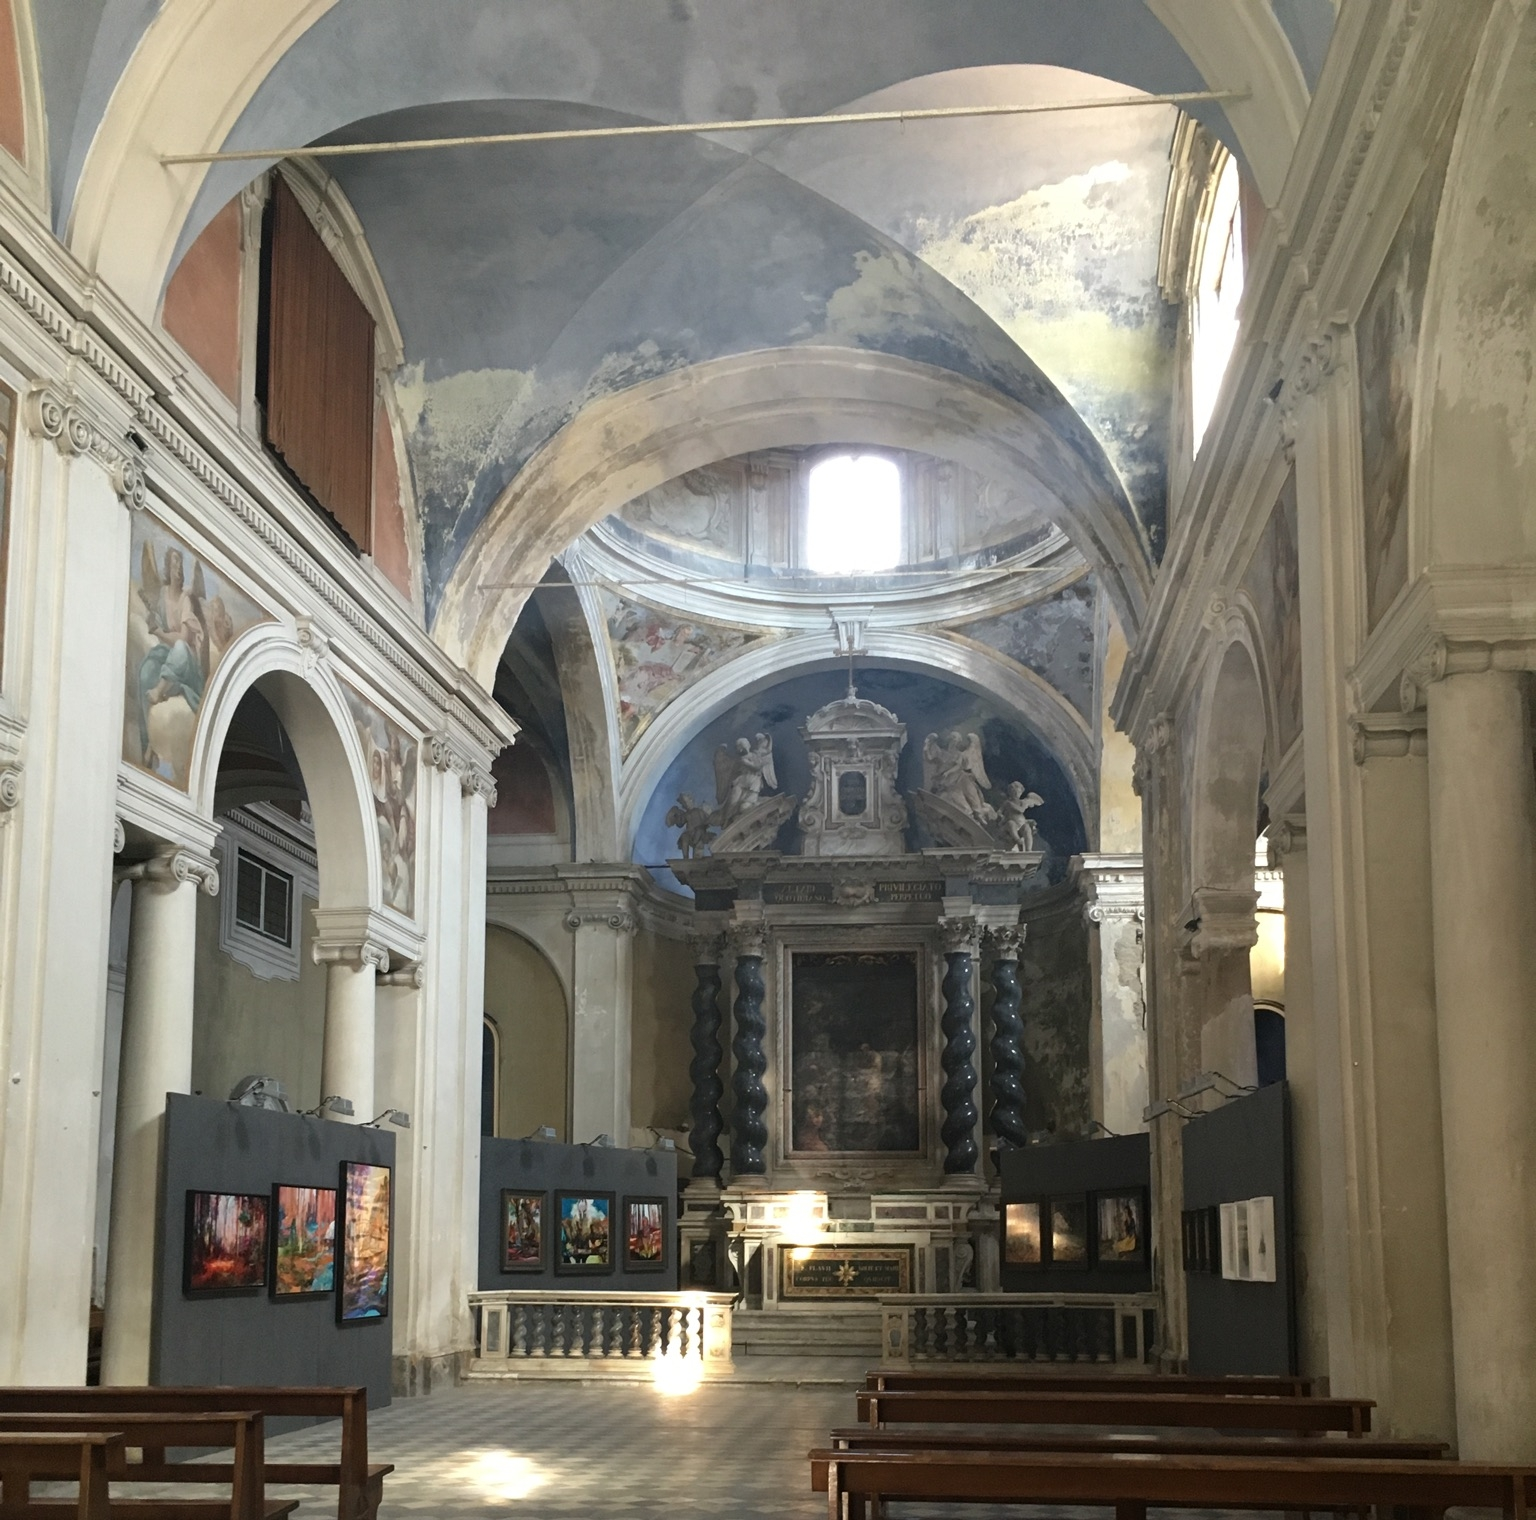 The main altar, the best preserved portion of the church.